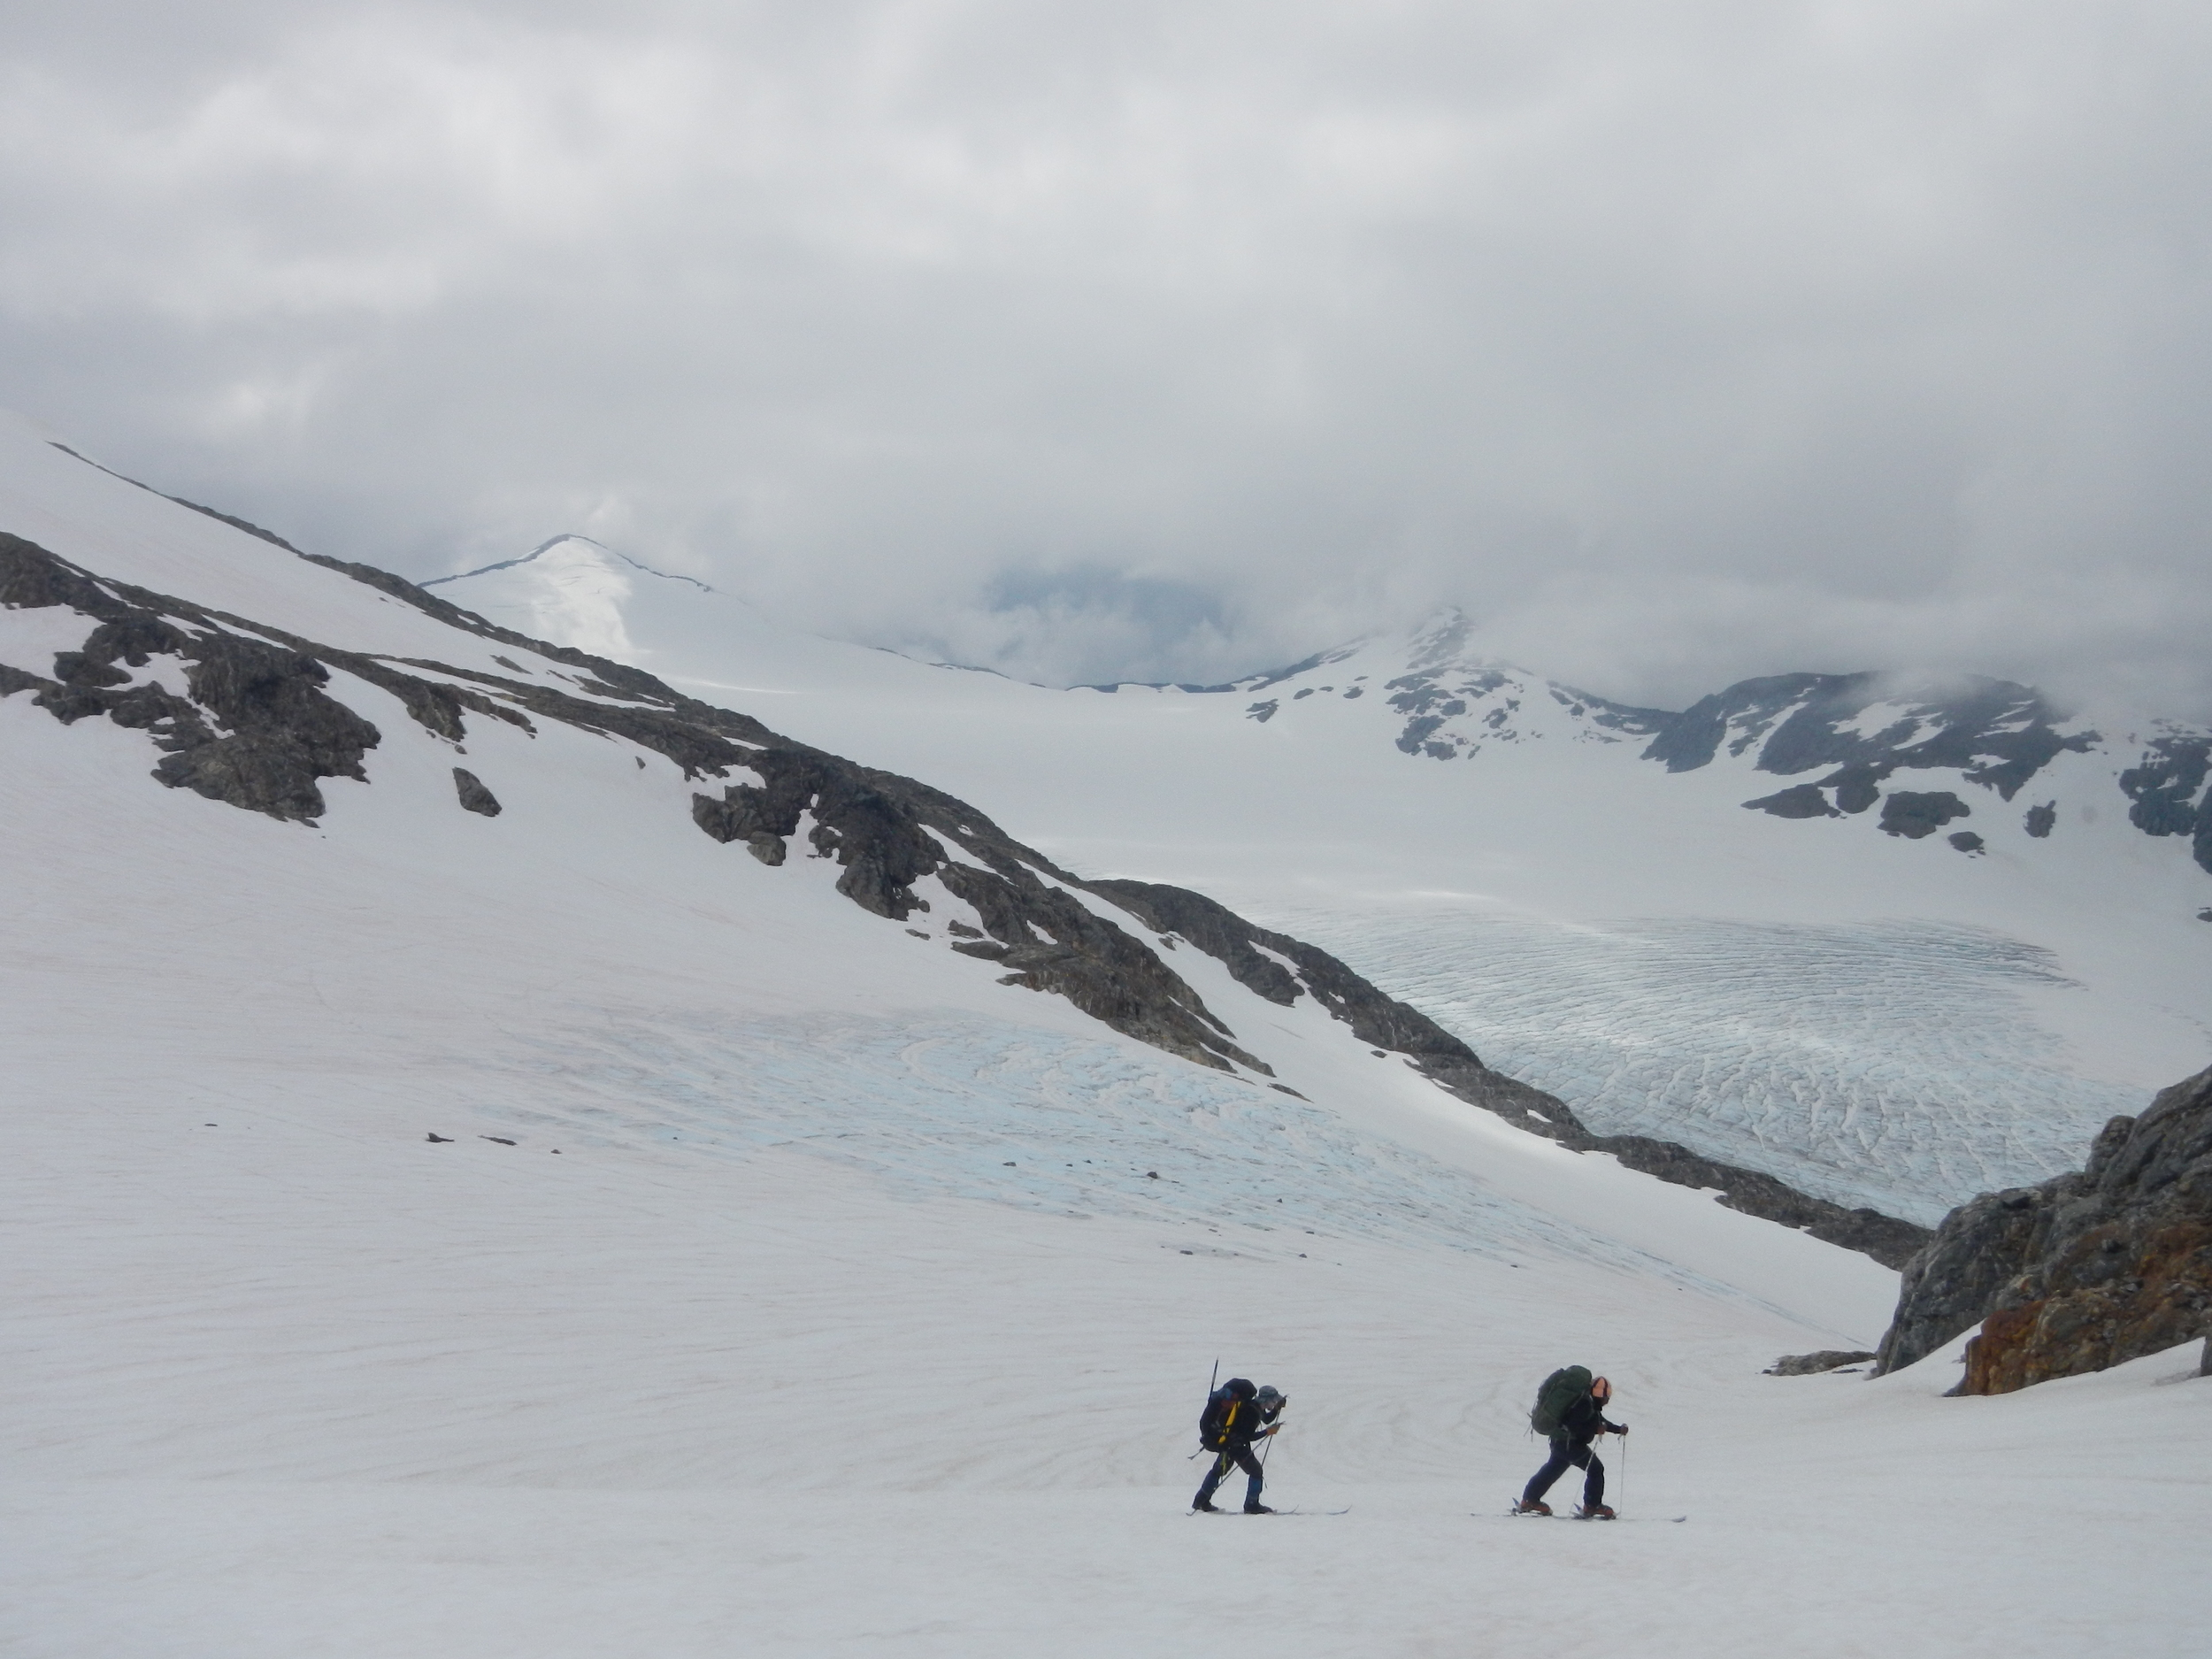 Staff member Stanley Pinchak and student Maya Smith ski up a track near the Thomas glacier with blue ice exposed on the Lemon Creek glacier in the lower background. photo by Natalie Raia